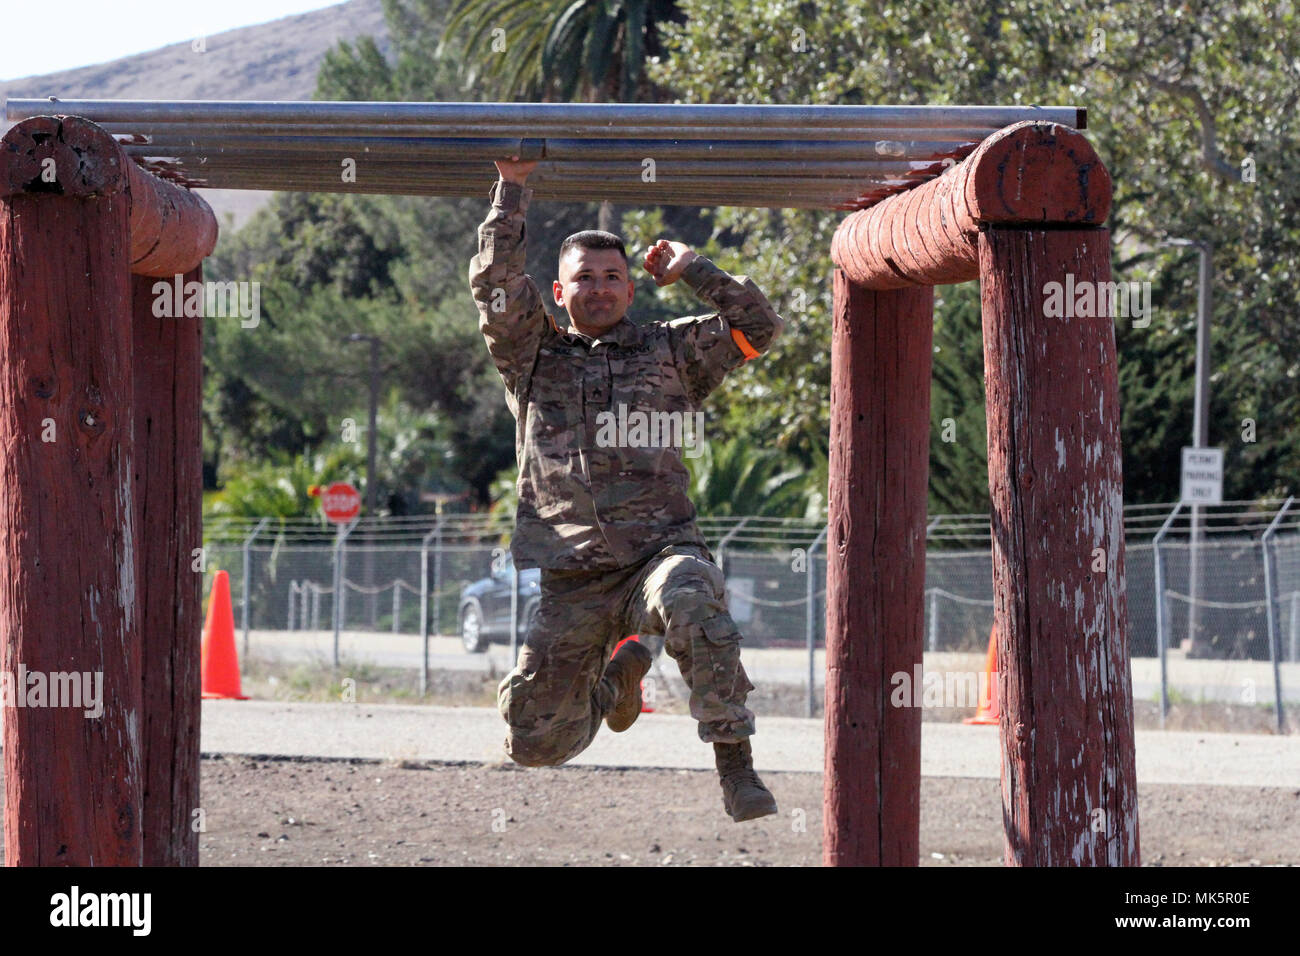 Sgt. George Ruiz works his way through the monkey bars in the ...